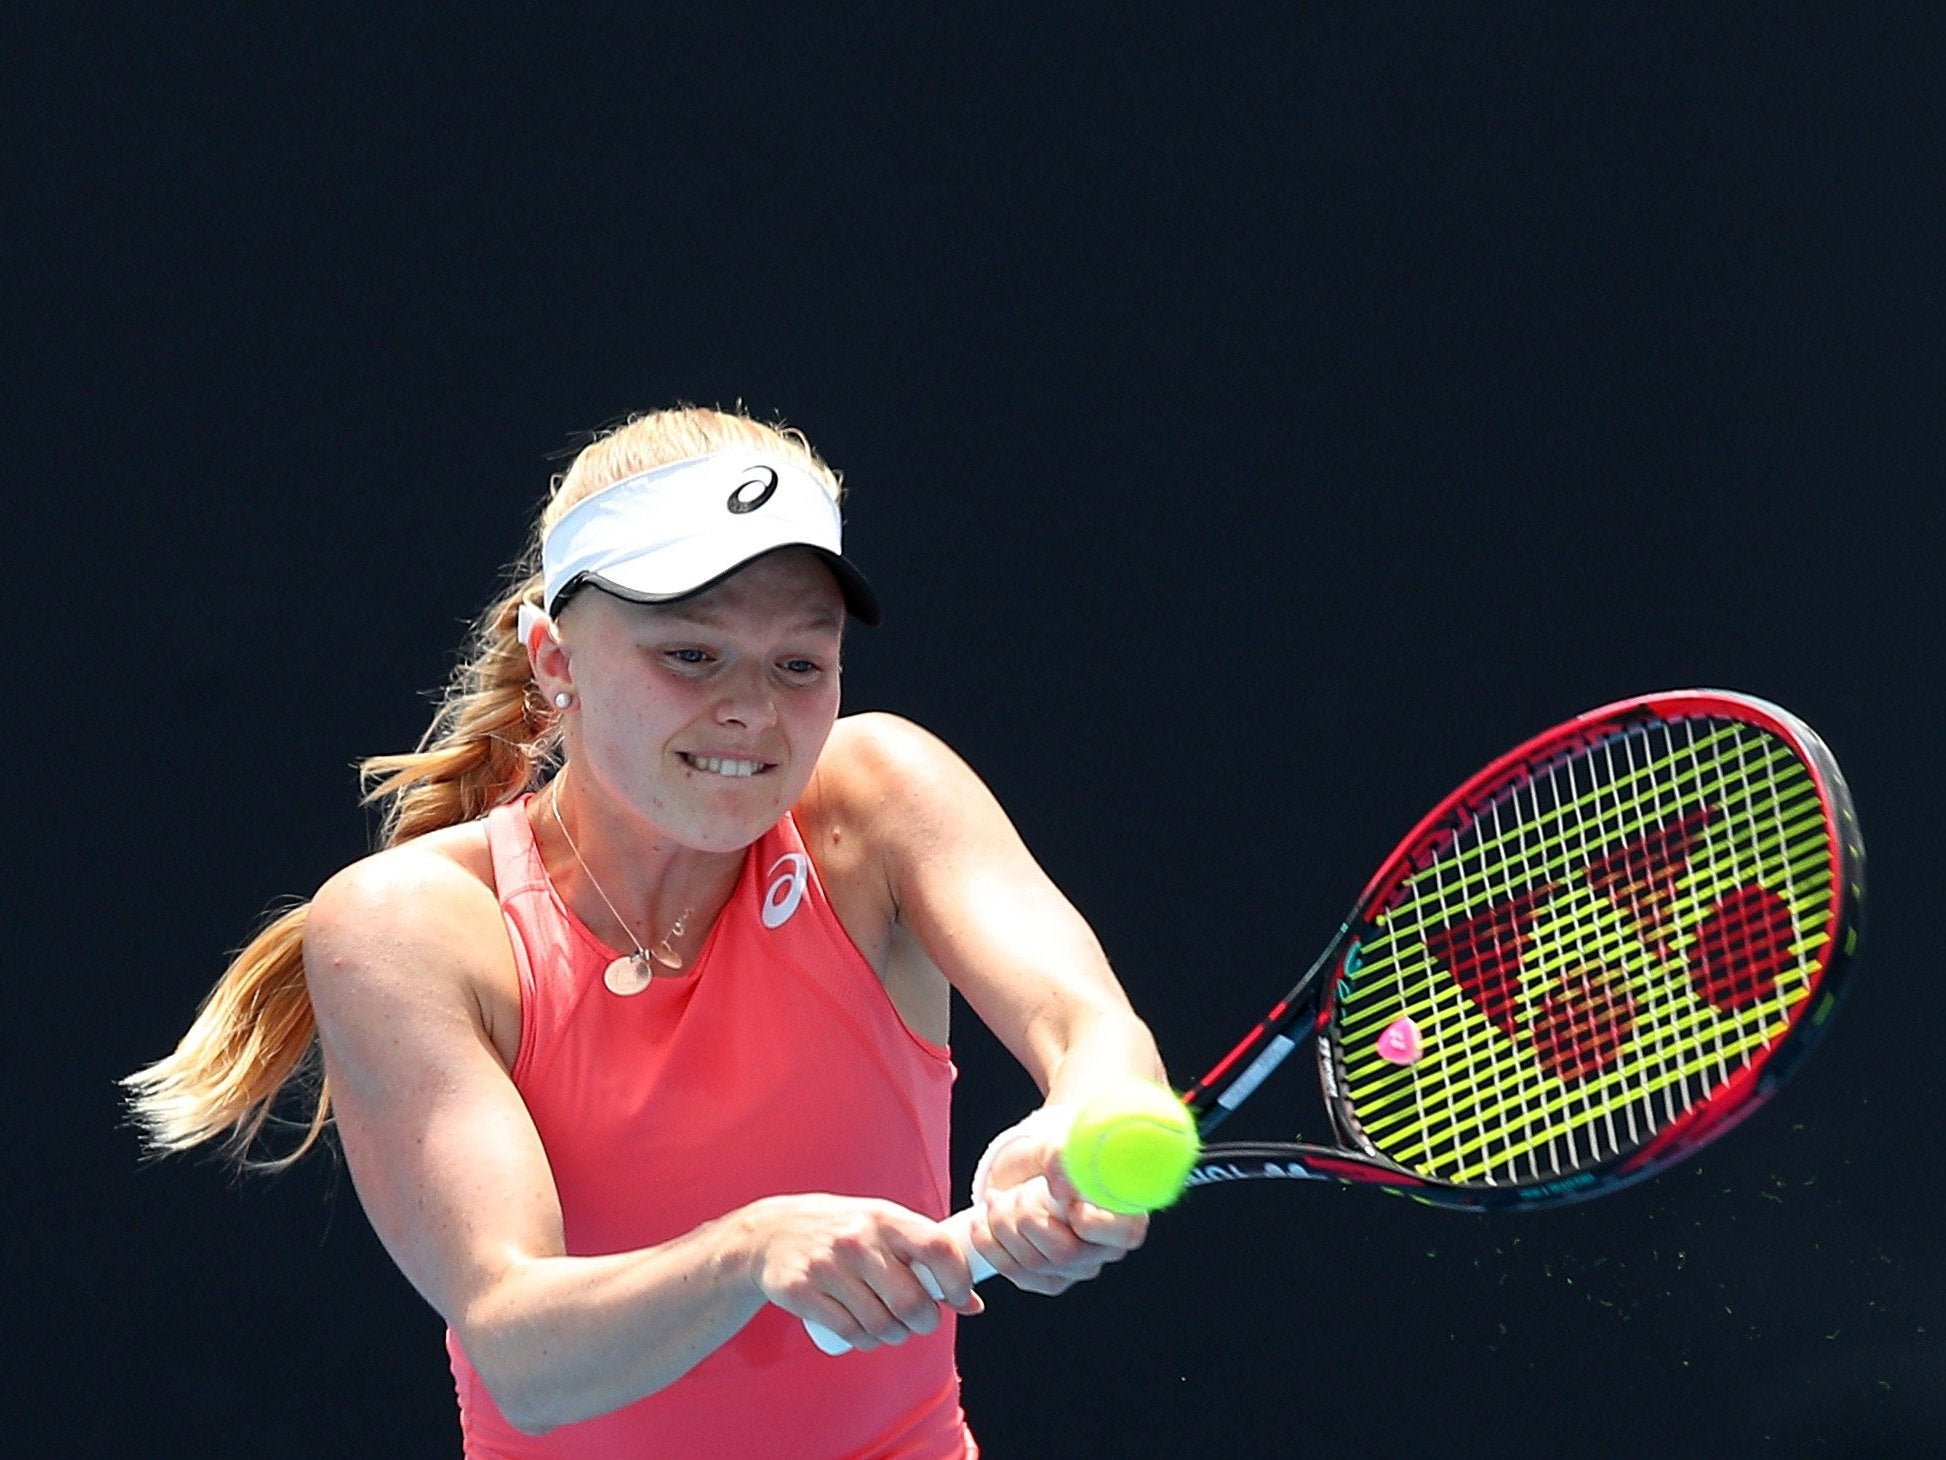 Australian Open 2019: Harriet Dart to face Maria Sharapova after qualifying for Grand Slam for the first time